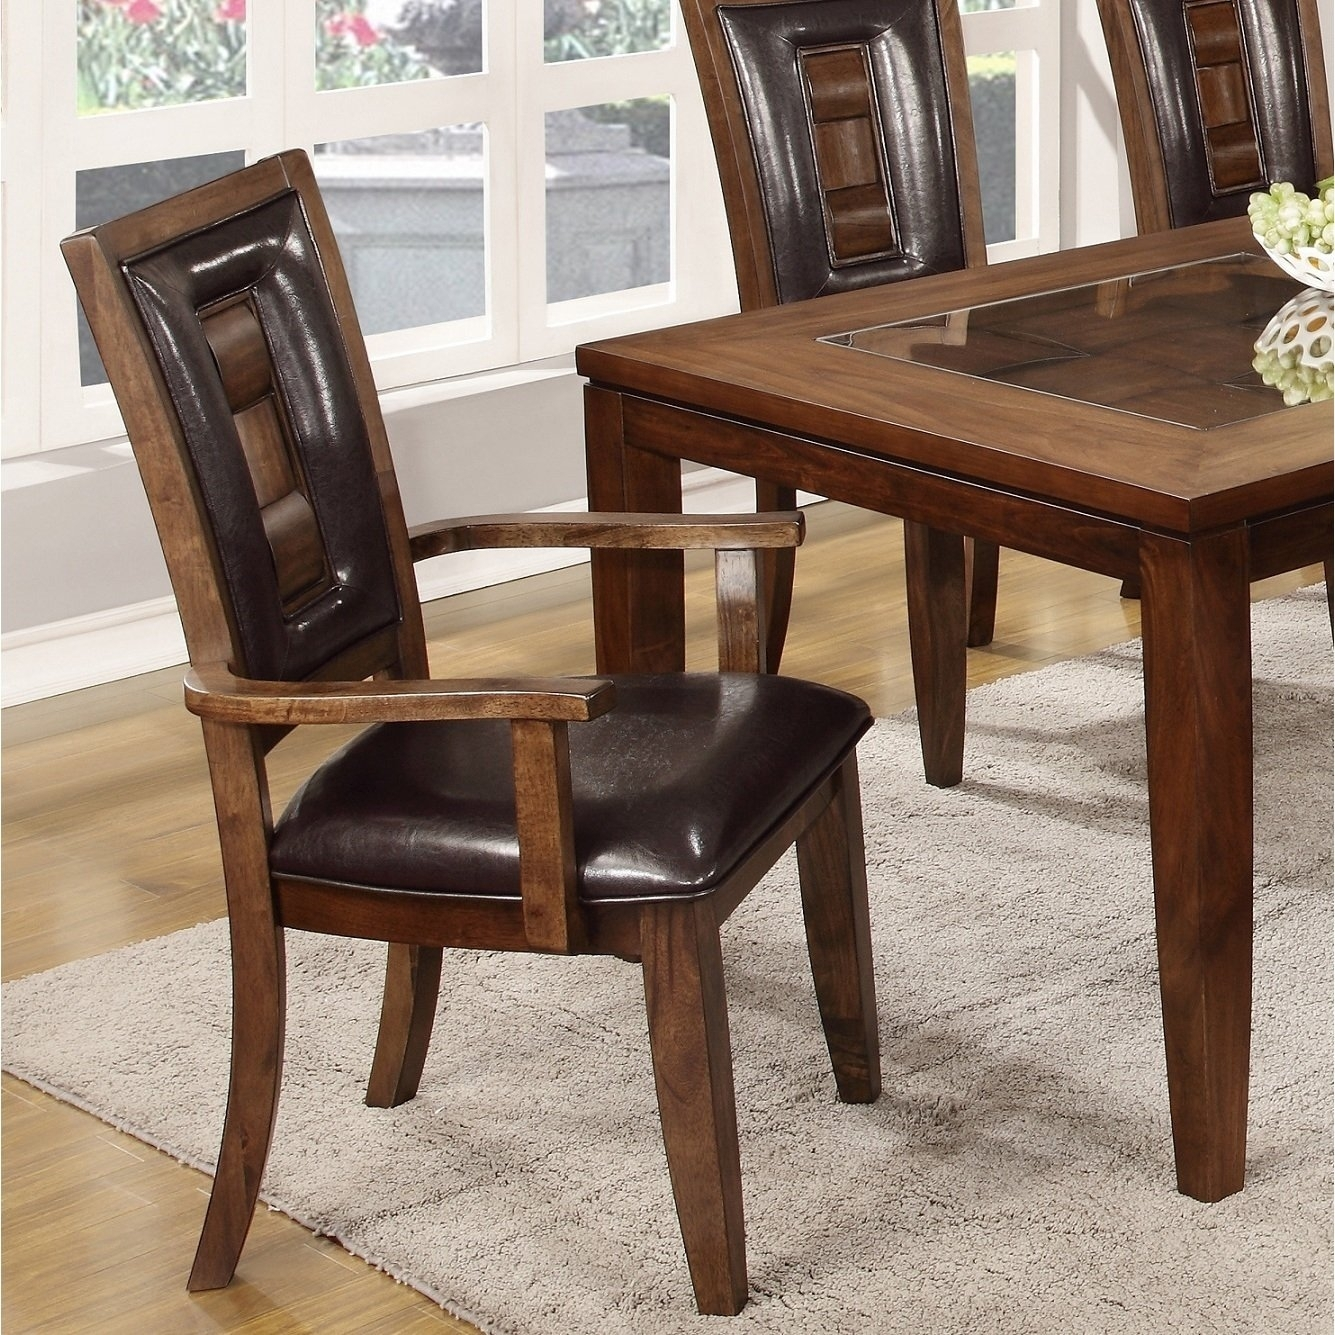 Shop Calais 7 Piece Parquet Finish Solid Wood Dining Table With 6 With Regard To Latest Parquet 6 Piece Dining Sets (Image 18 of 20)